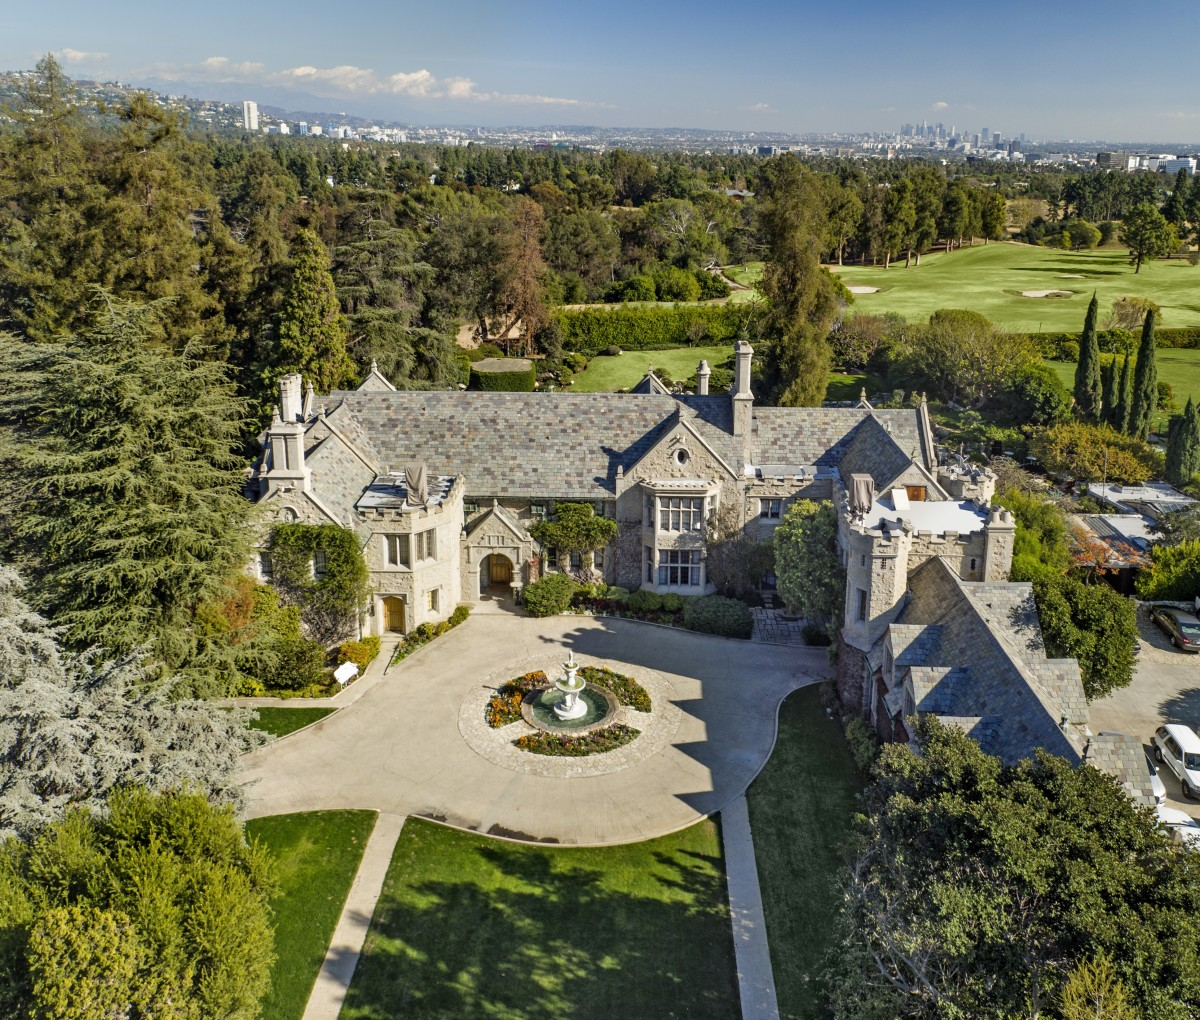 Playboy Mansion Sold to Billionaire Twinkies Chief